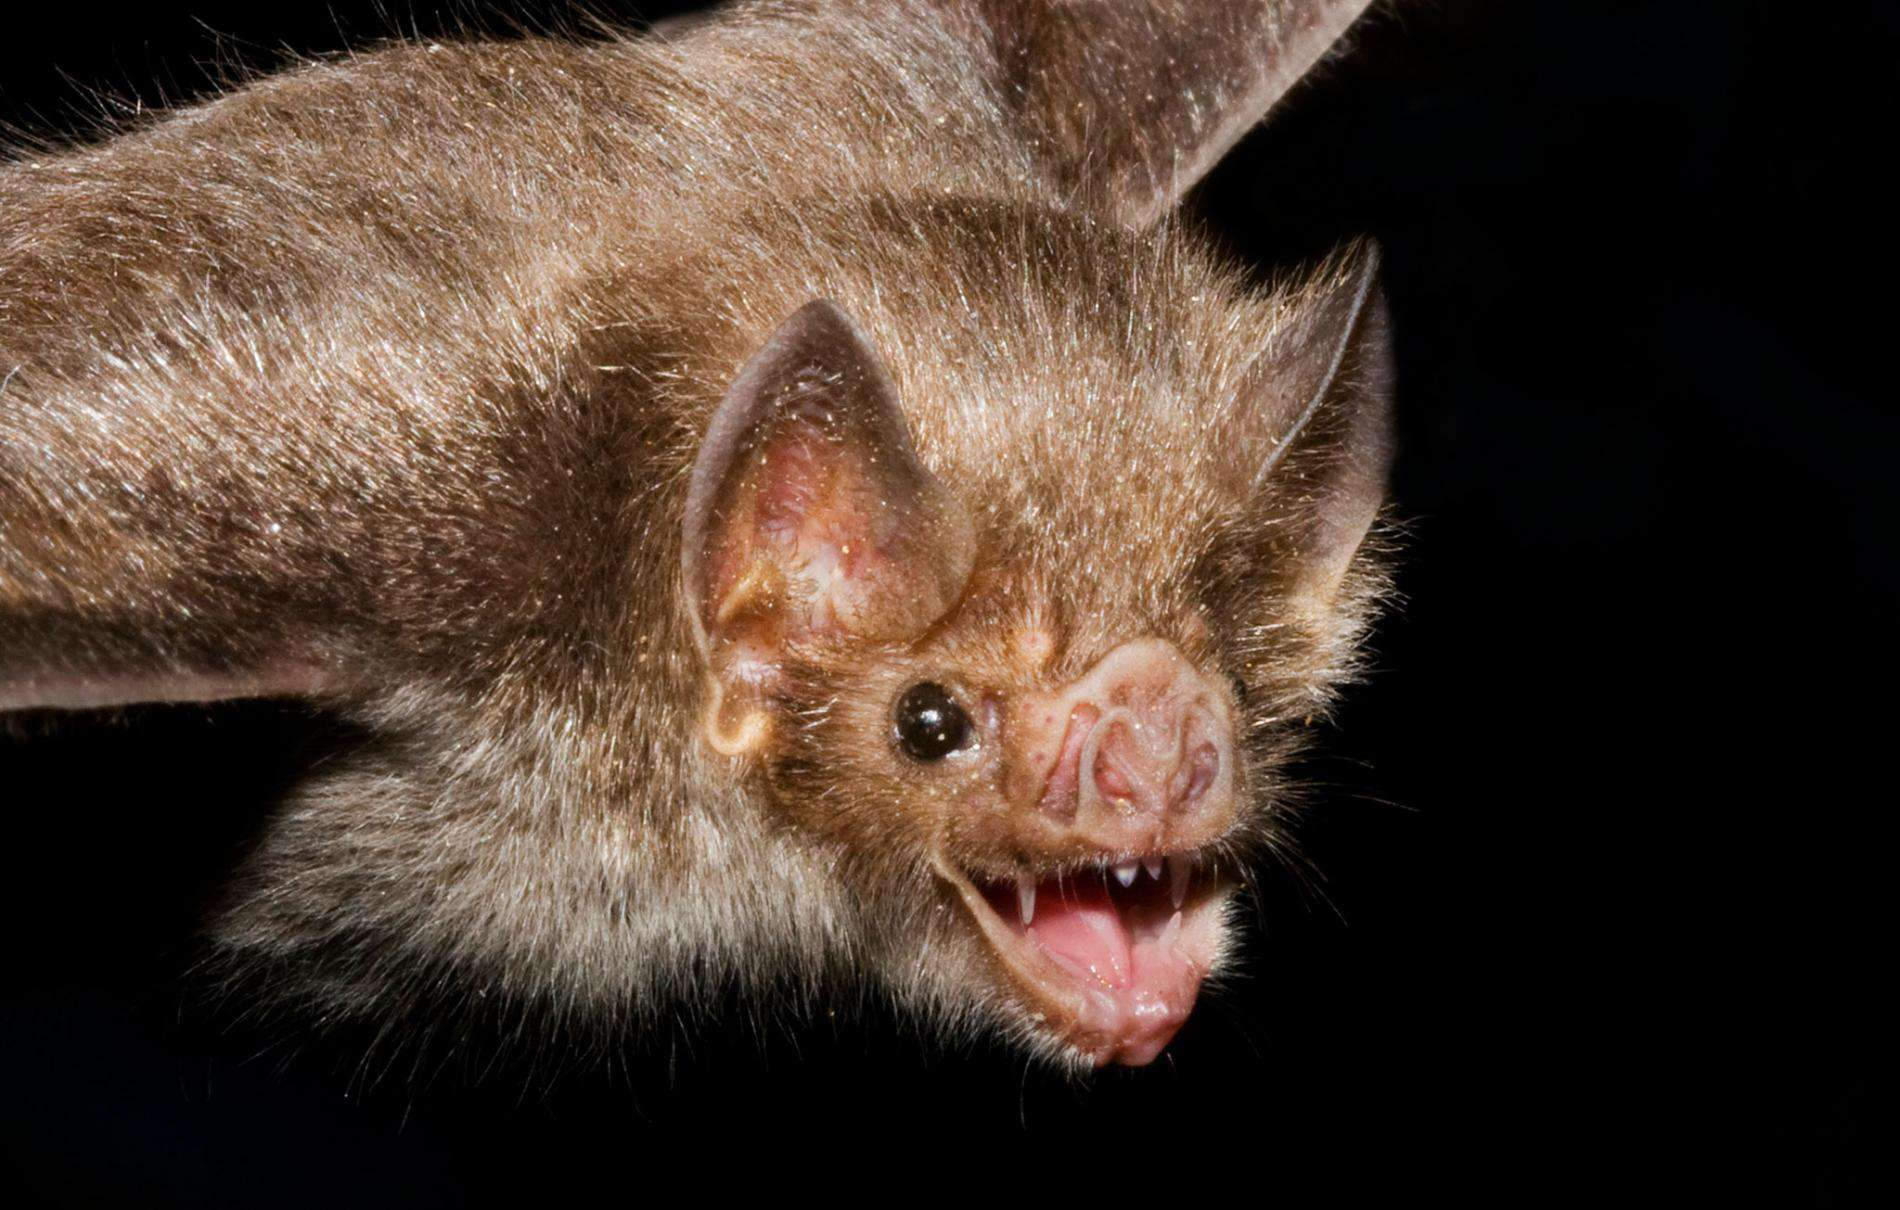 Bats Are Blind – science myth